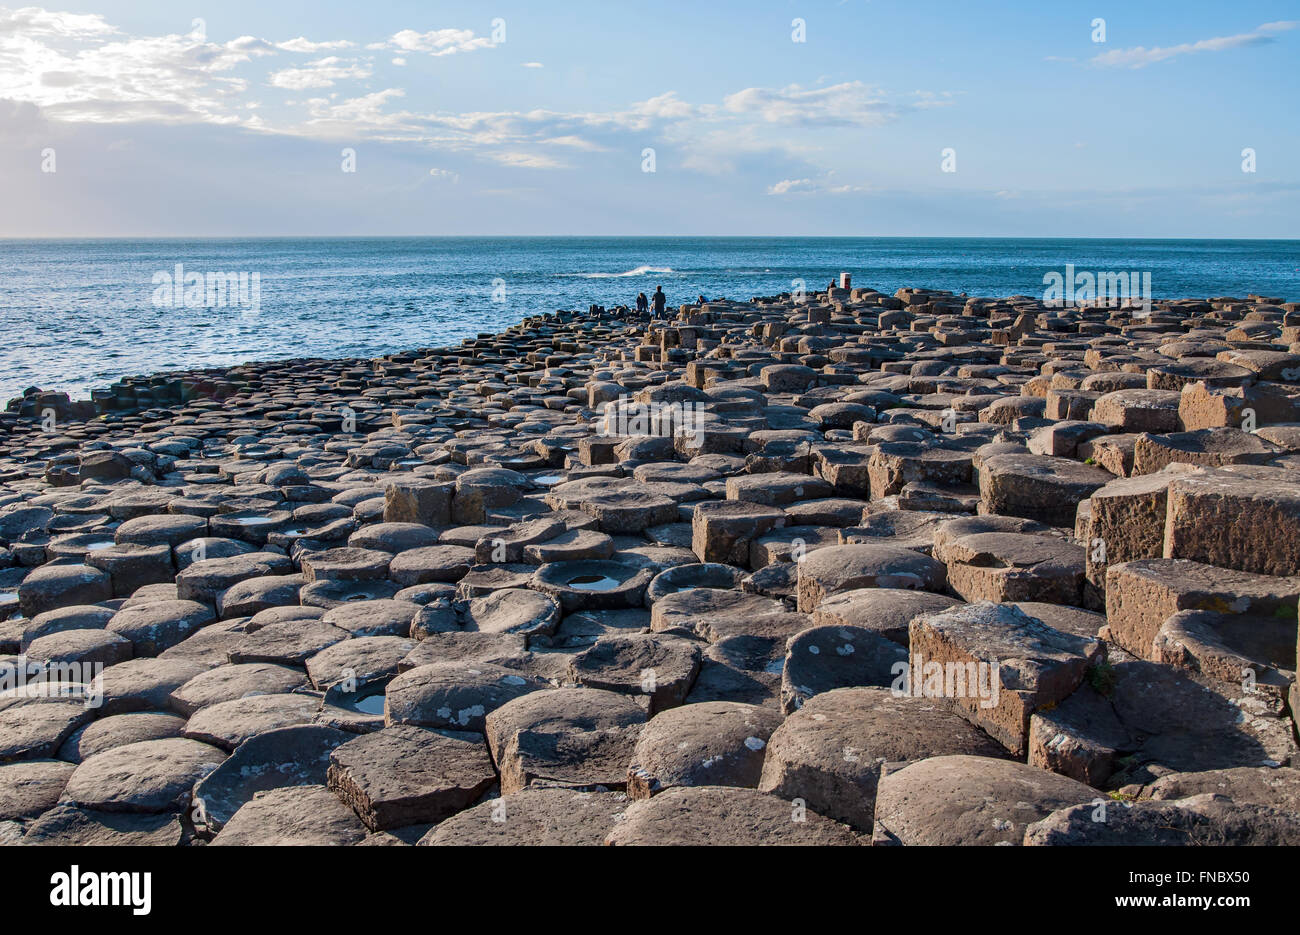 Giants Causeway. Unique natural geological formation of hexagonal volcanic basalt rocks and stones on the coast - Stock Image